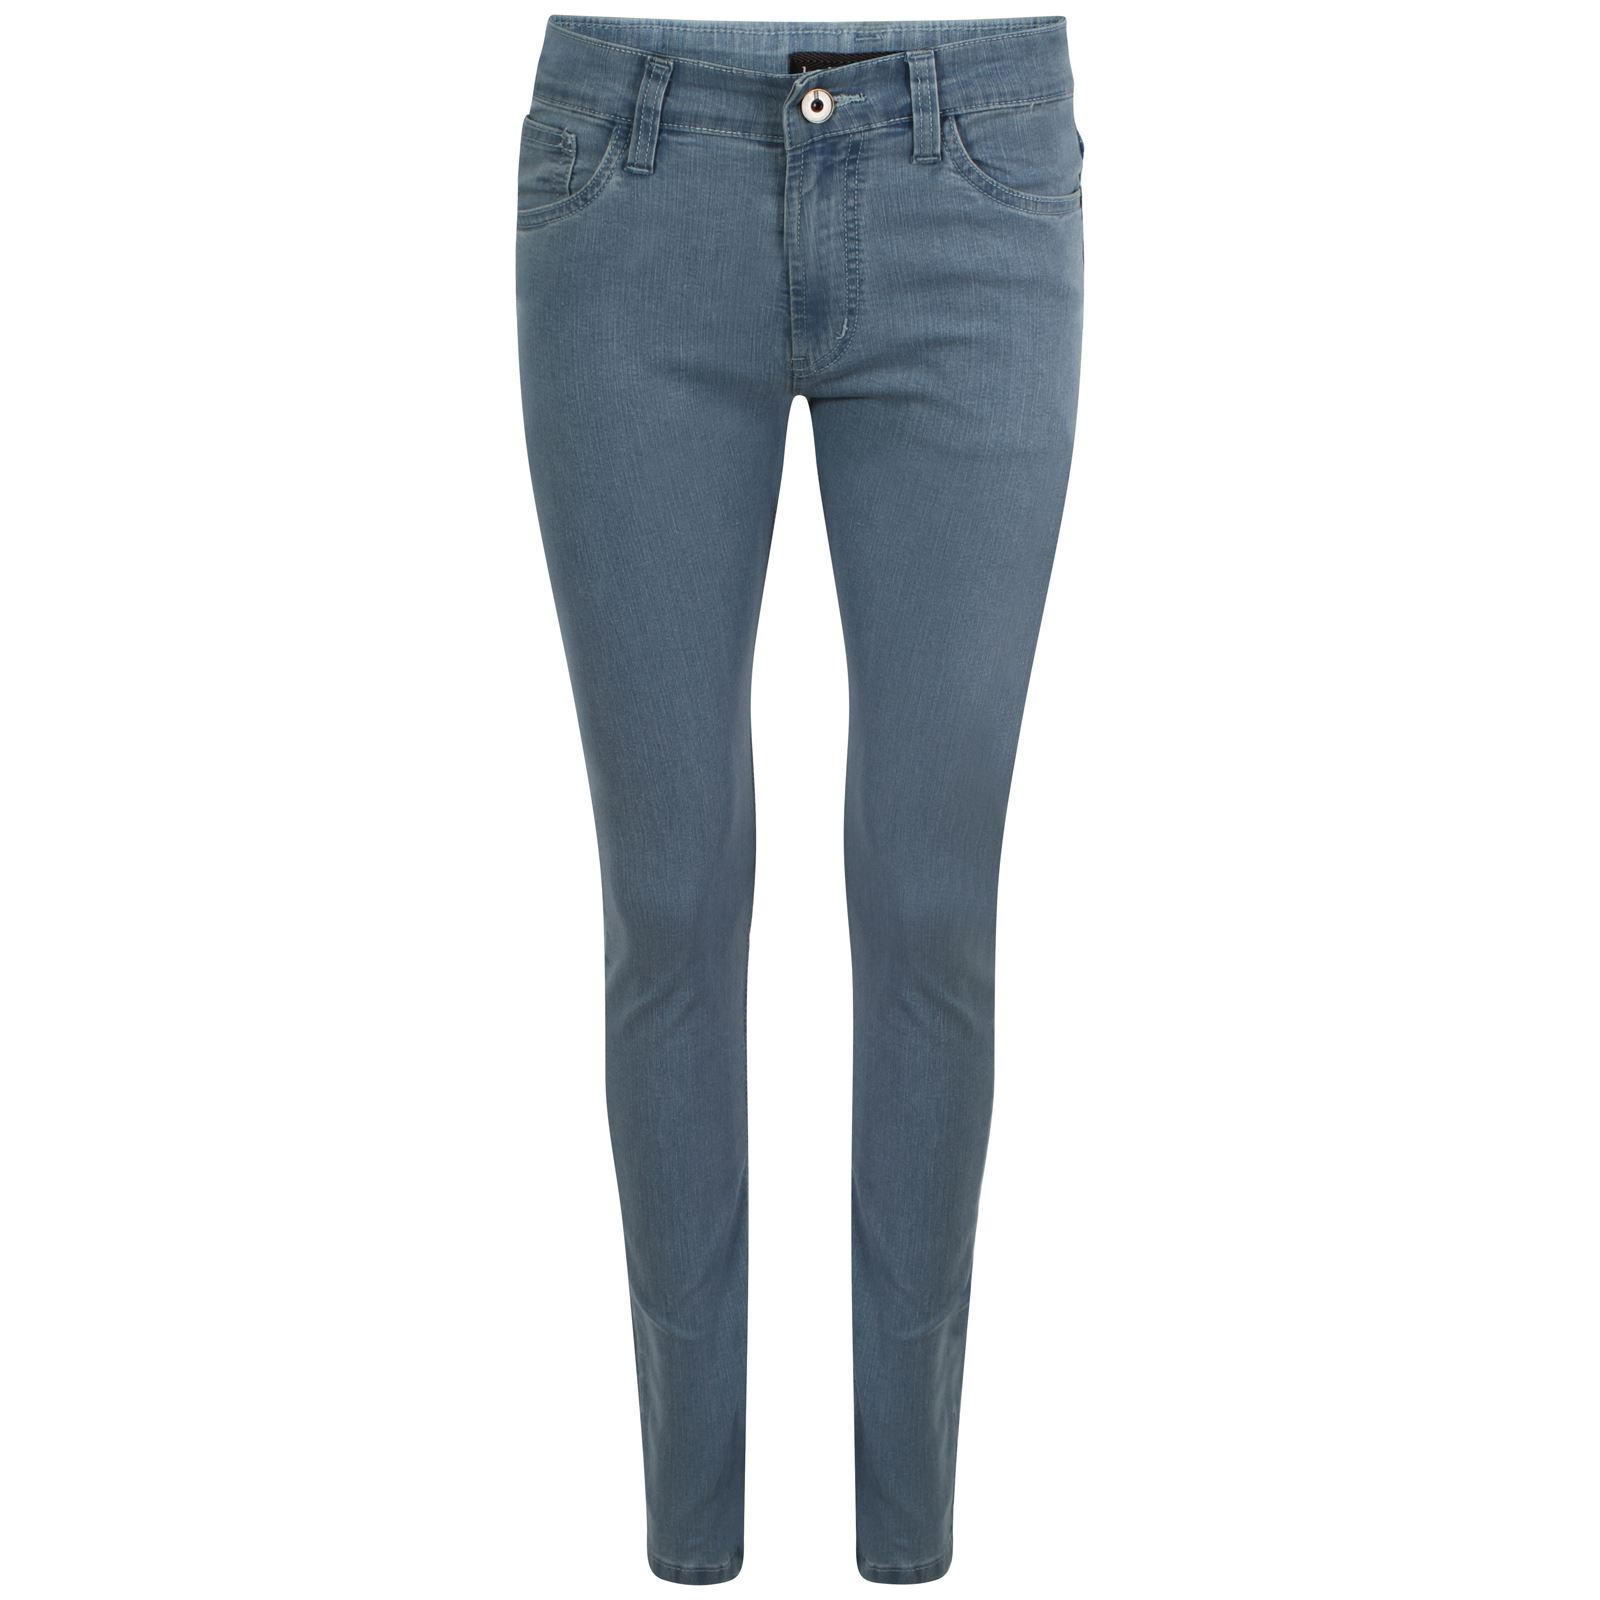 The denim look knit fabric is a rayon/lycra blend, which makes it very soft and stretchy despite its sturdy denim style appearance. The backside of the fabric is lighter in color and has a .